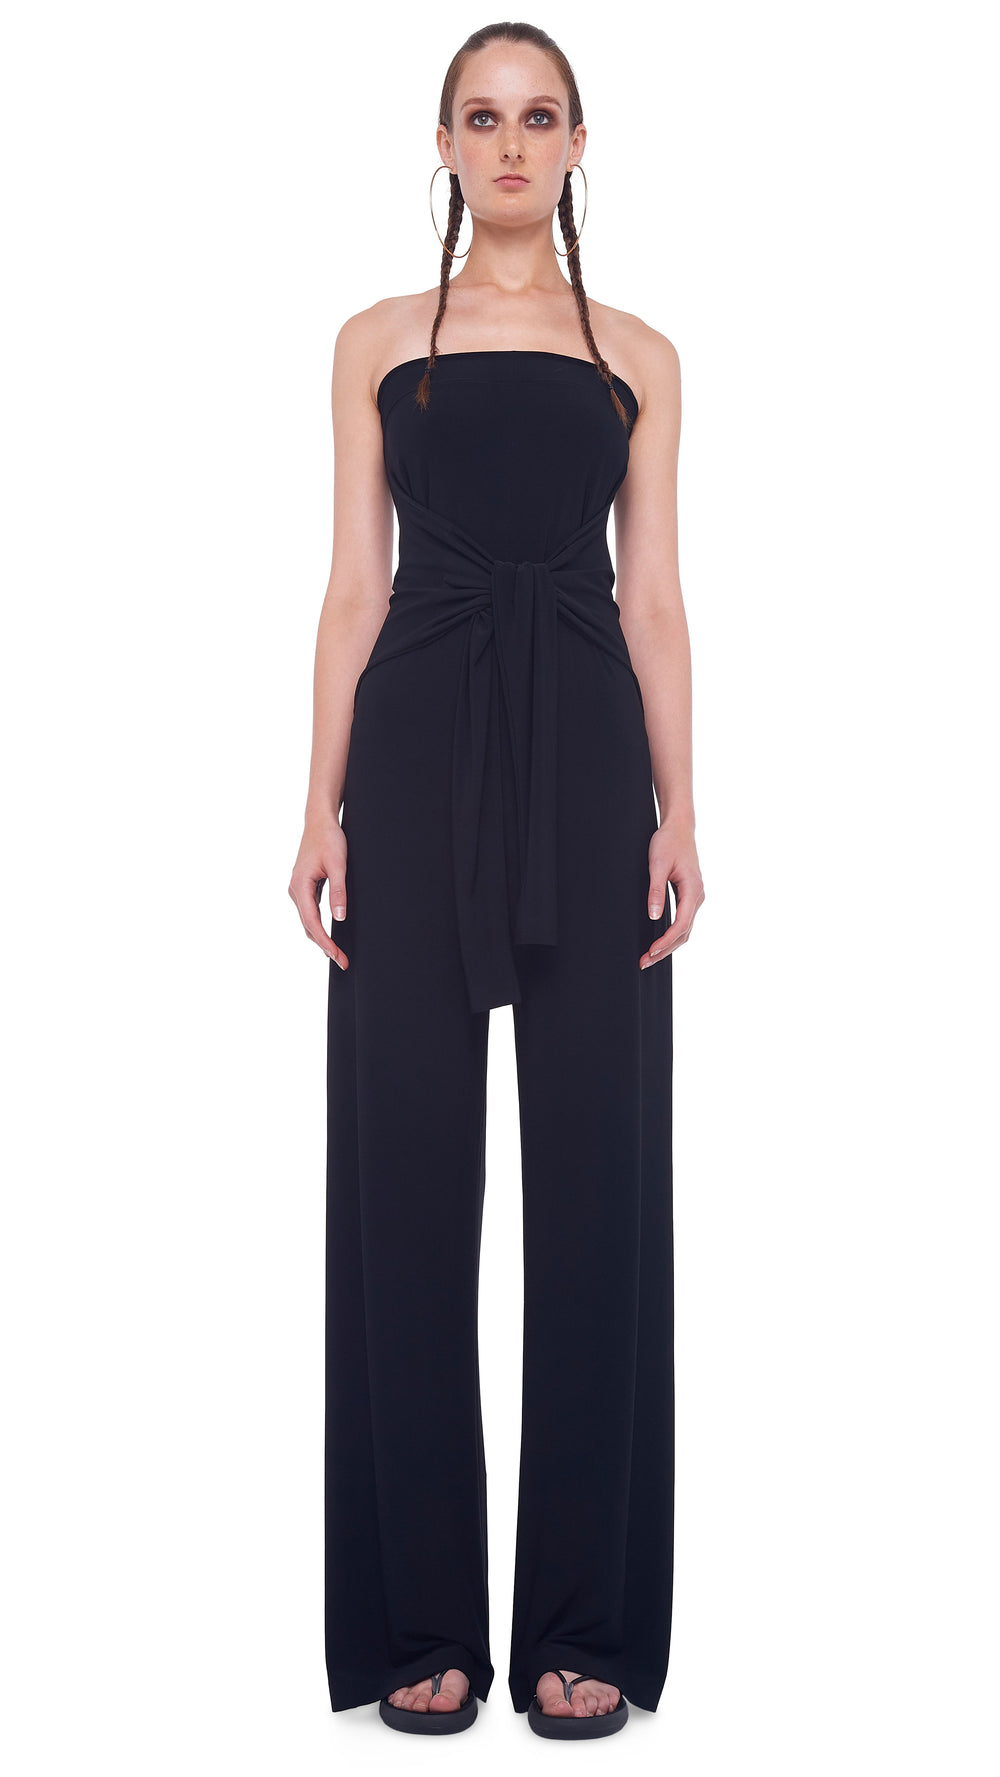 TY FRONT ALL IN ONE STRAPLESS JUMPSUIT - 1